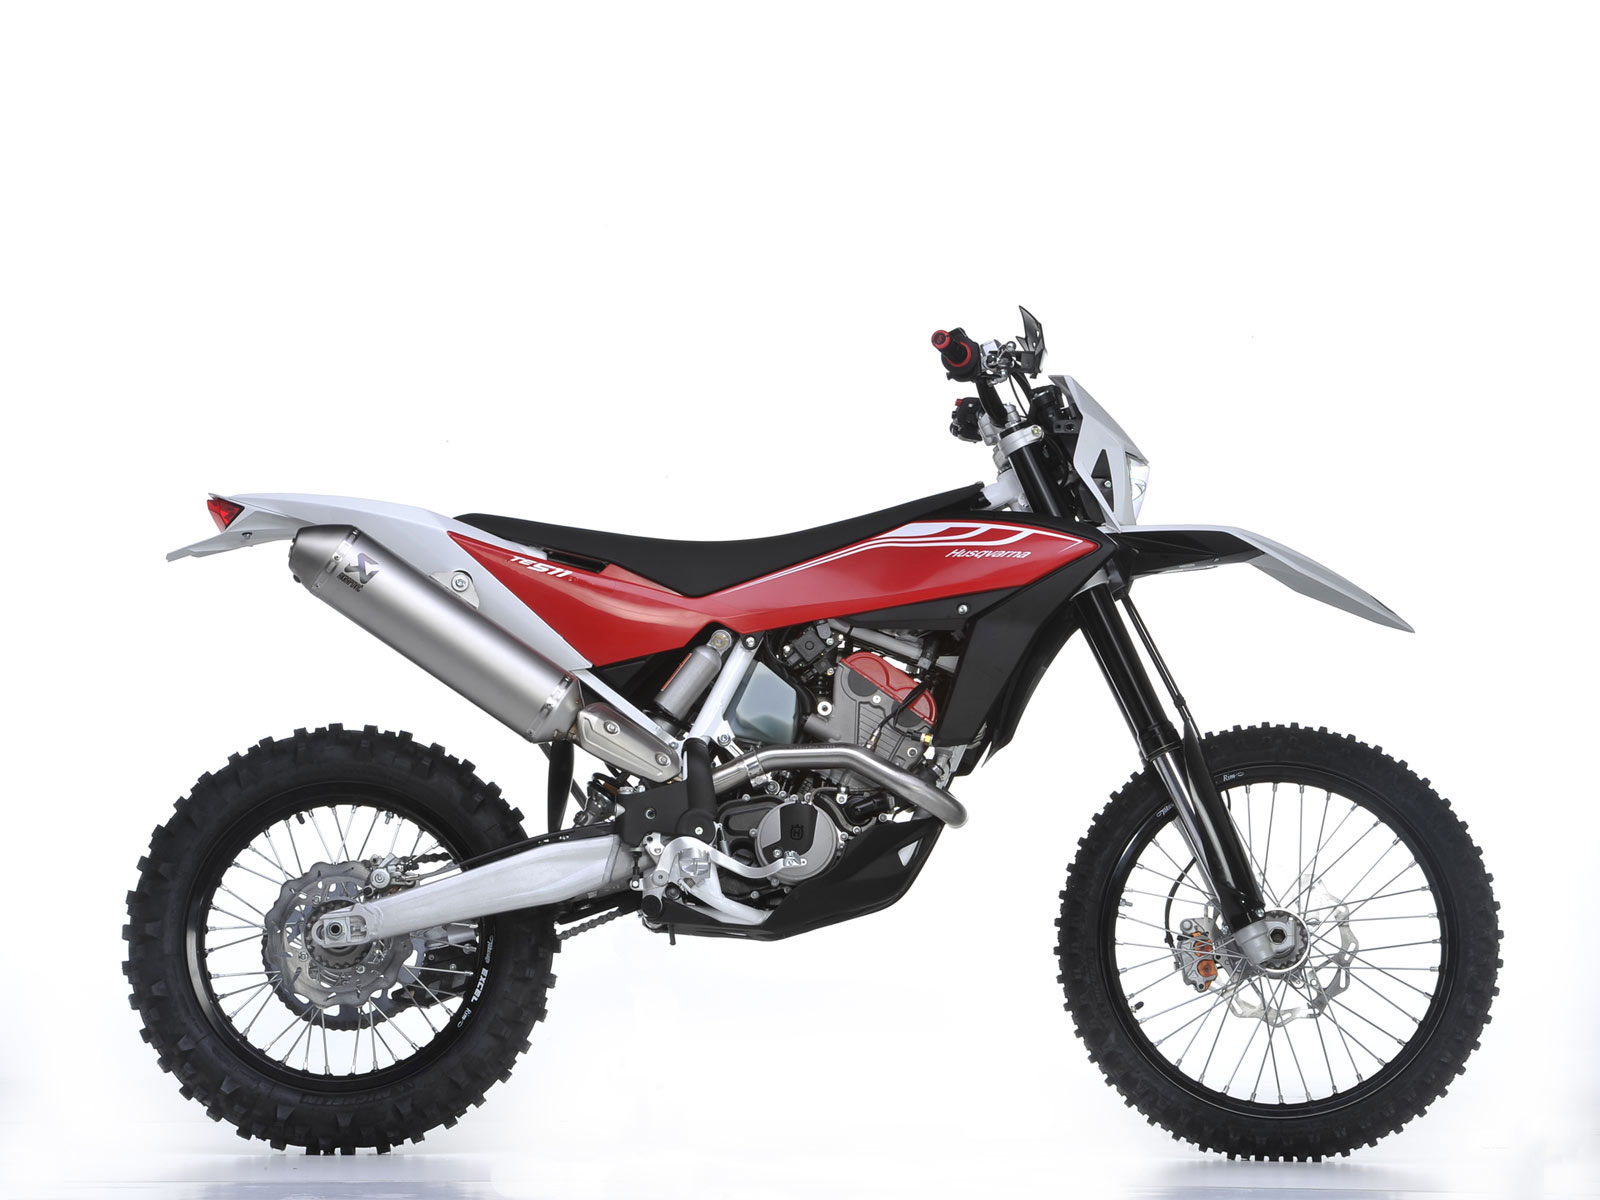 Husqvarna te511 photo - 7